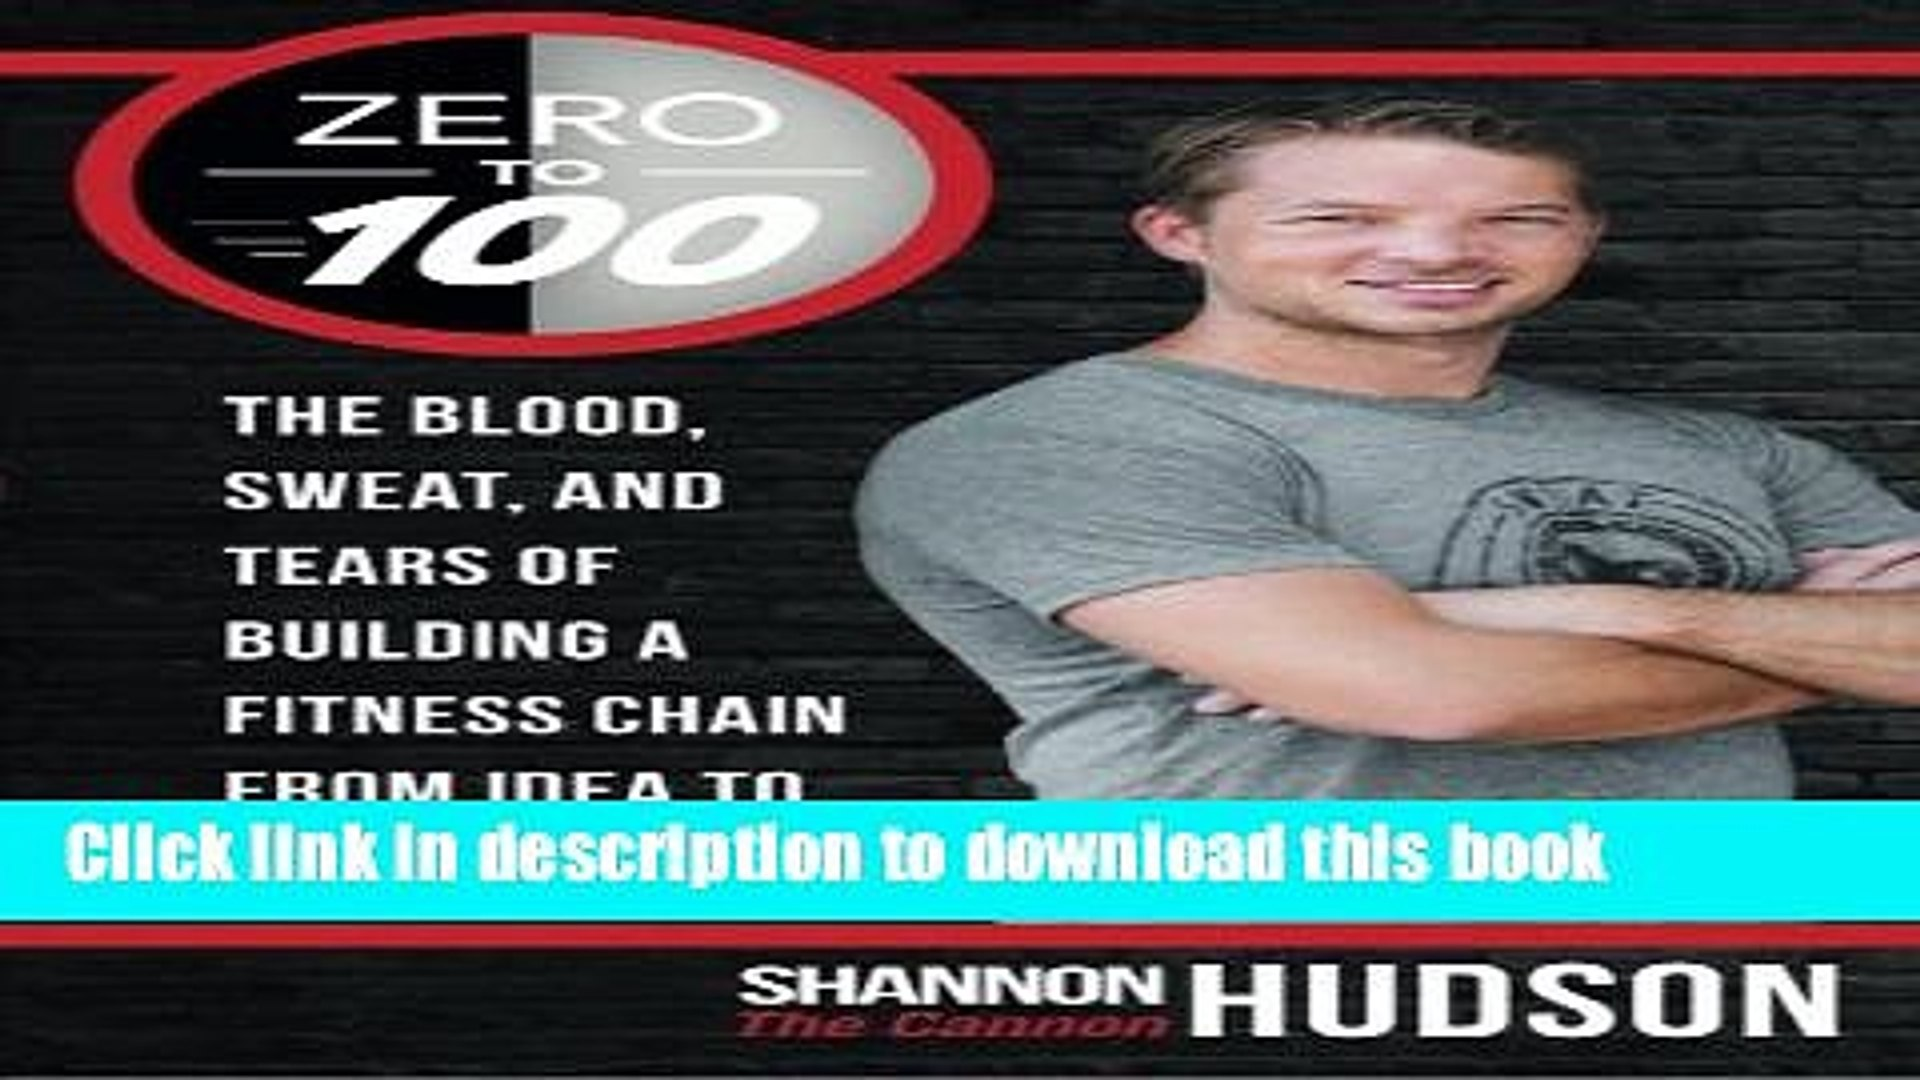 [Popular] Zero to 100: The Blood, Sweat, and Tears of Building a Fitness Chain from Idea to 100